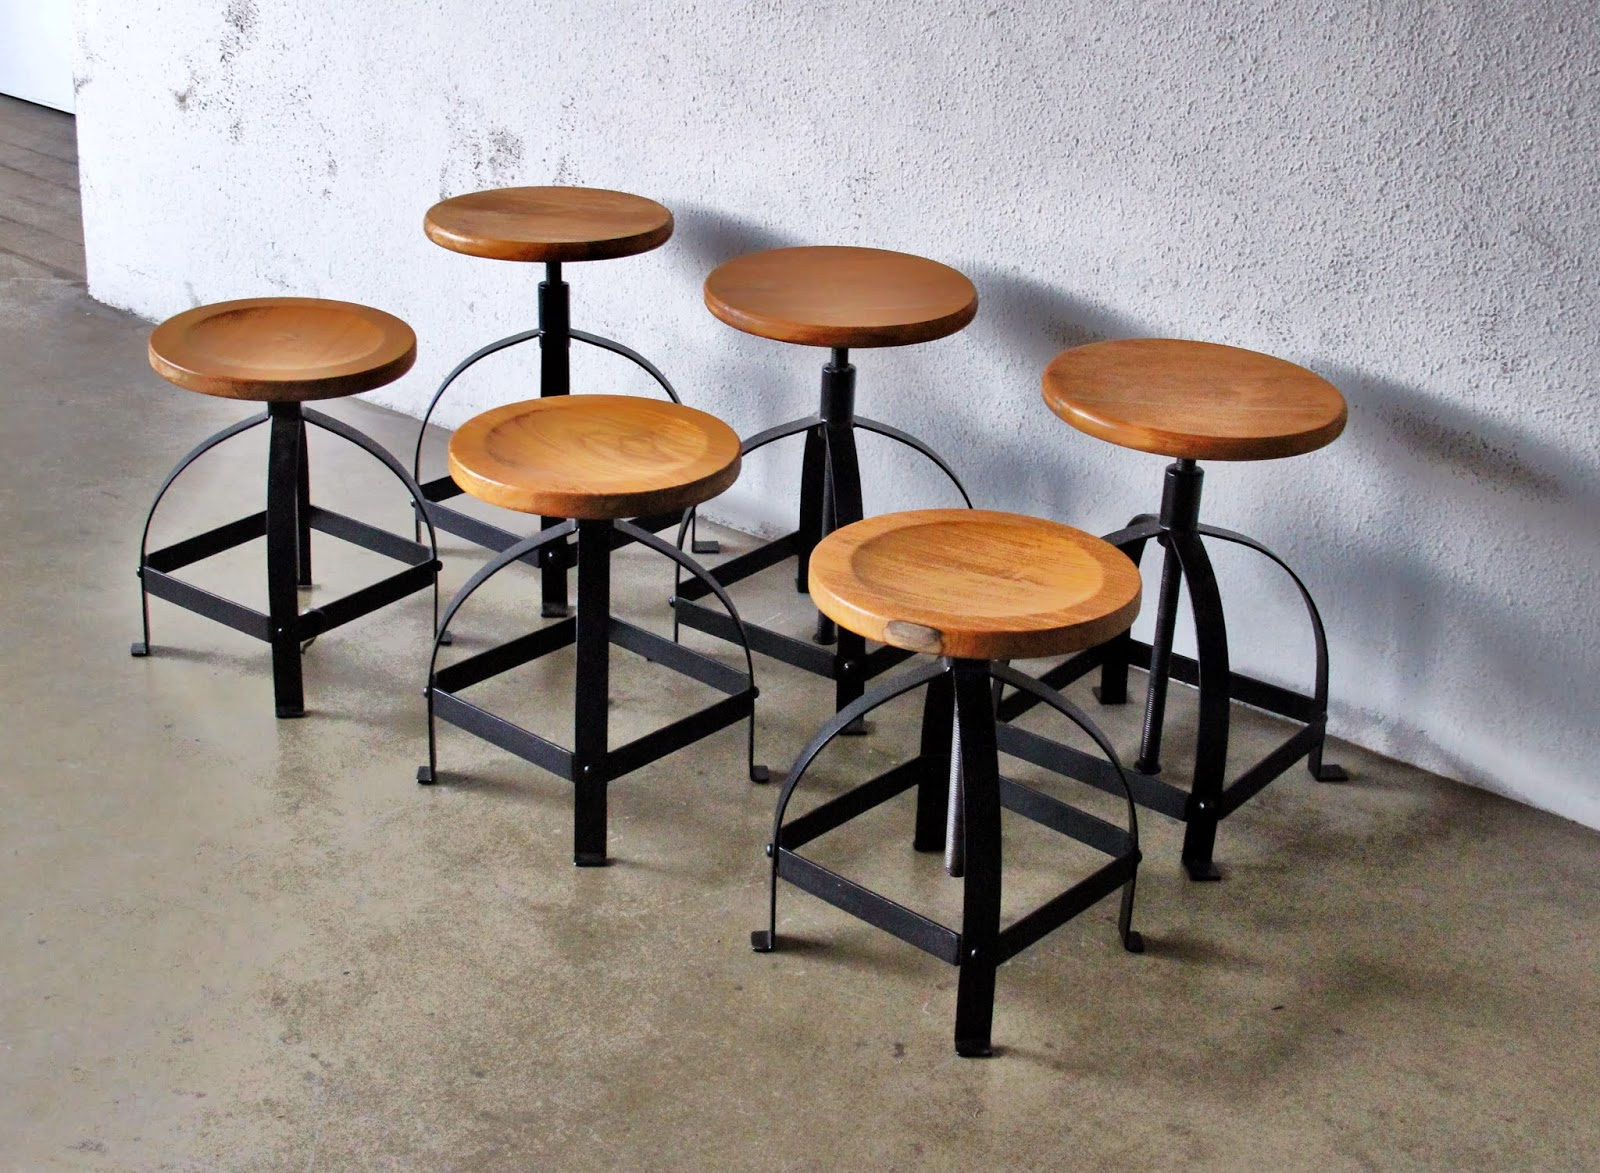 Delightful SECOND CHARM FURNITURE   STOOLS, BARSTOOLS, BAR CHAIRS AND BENCHES